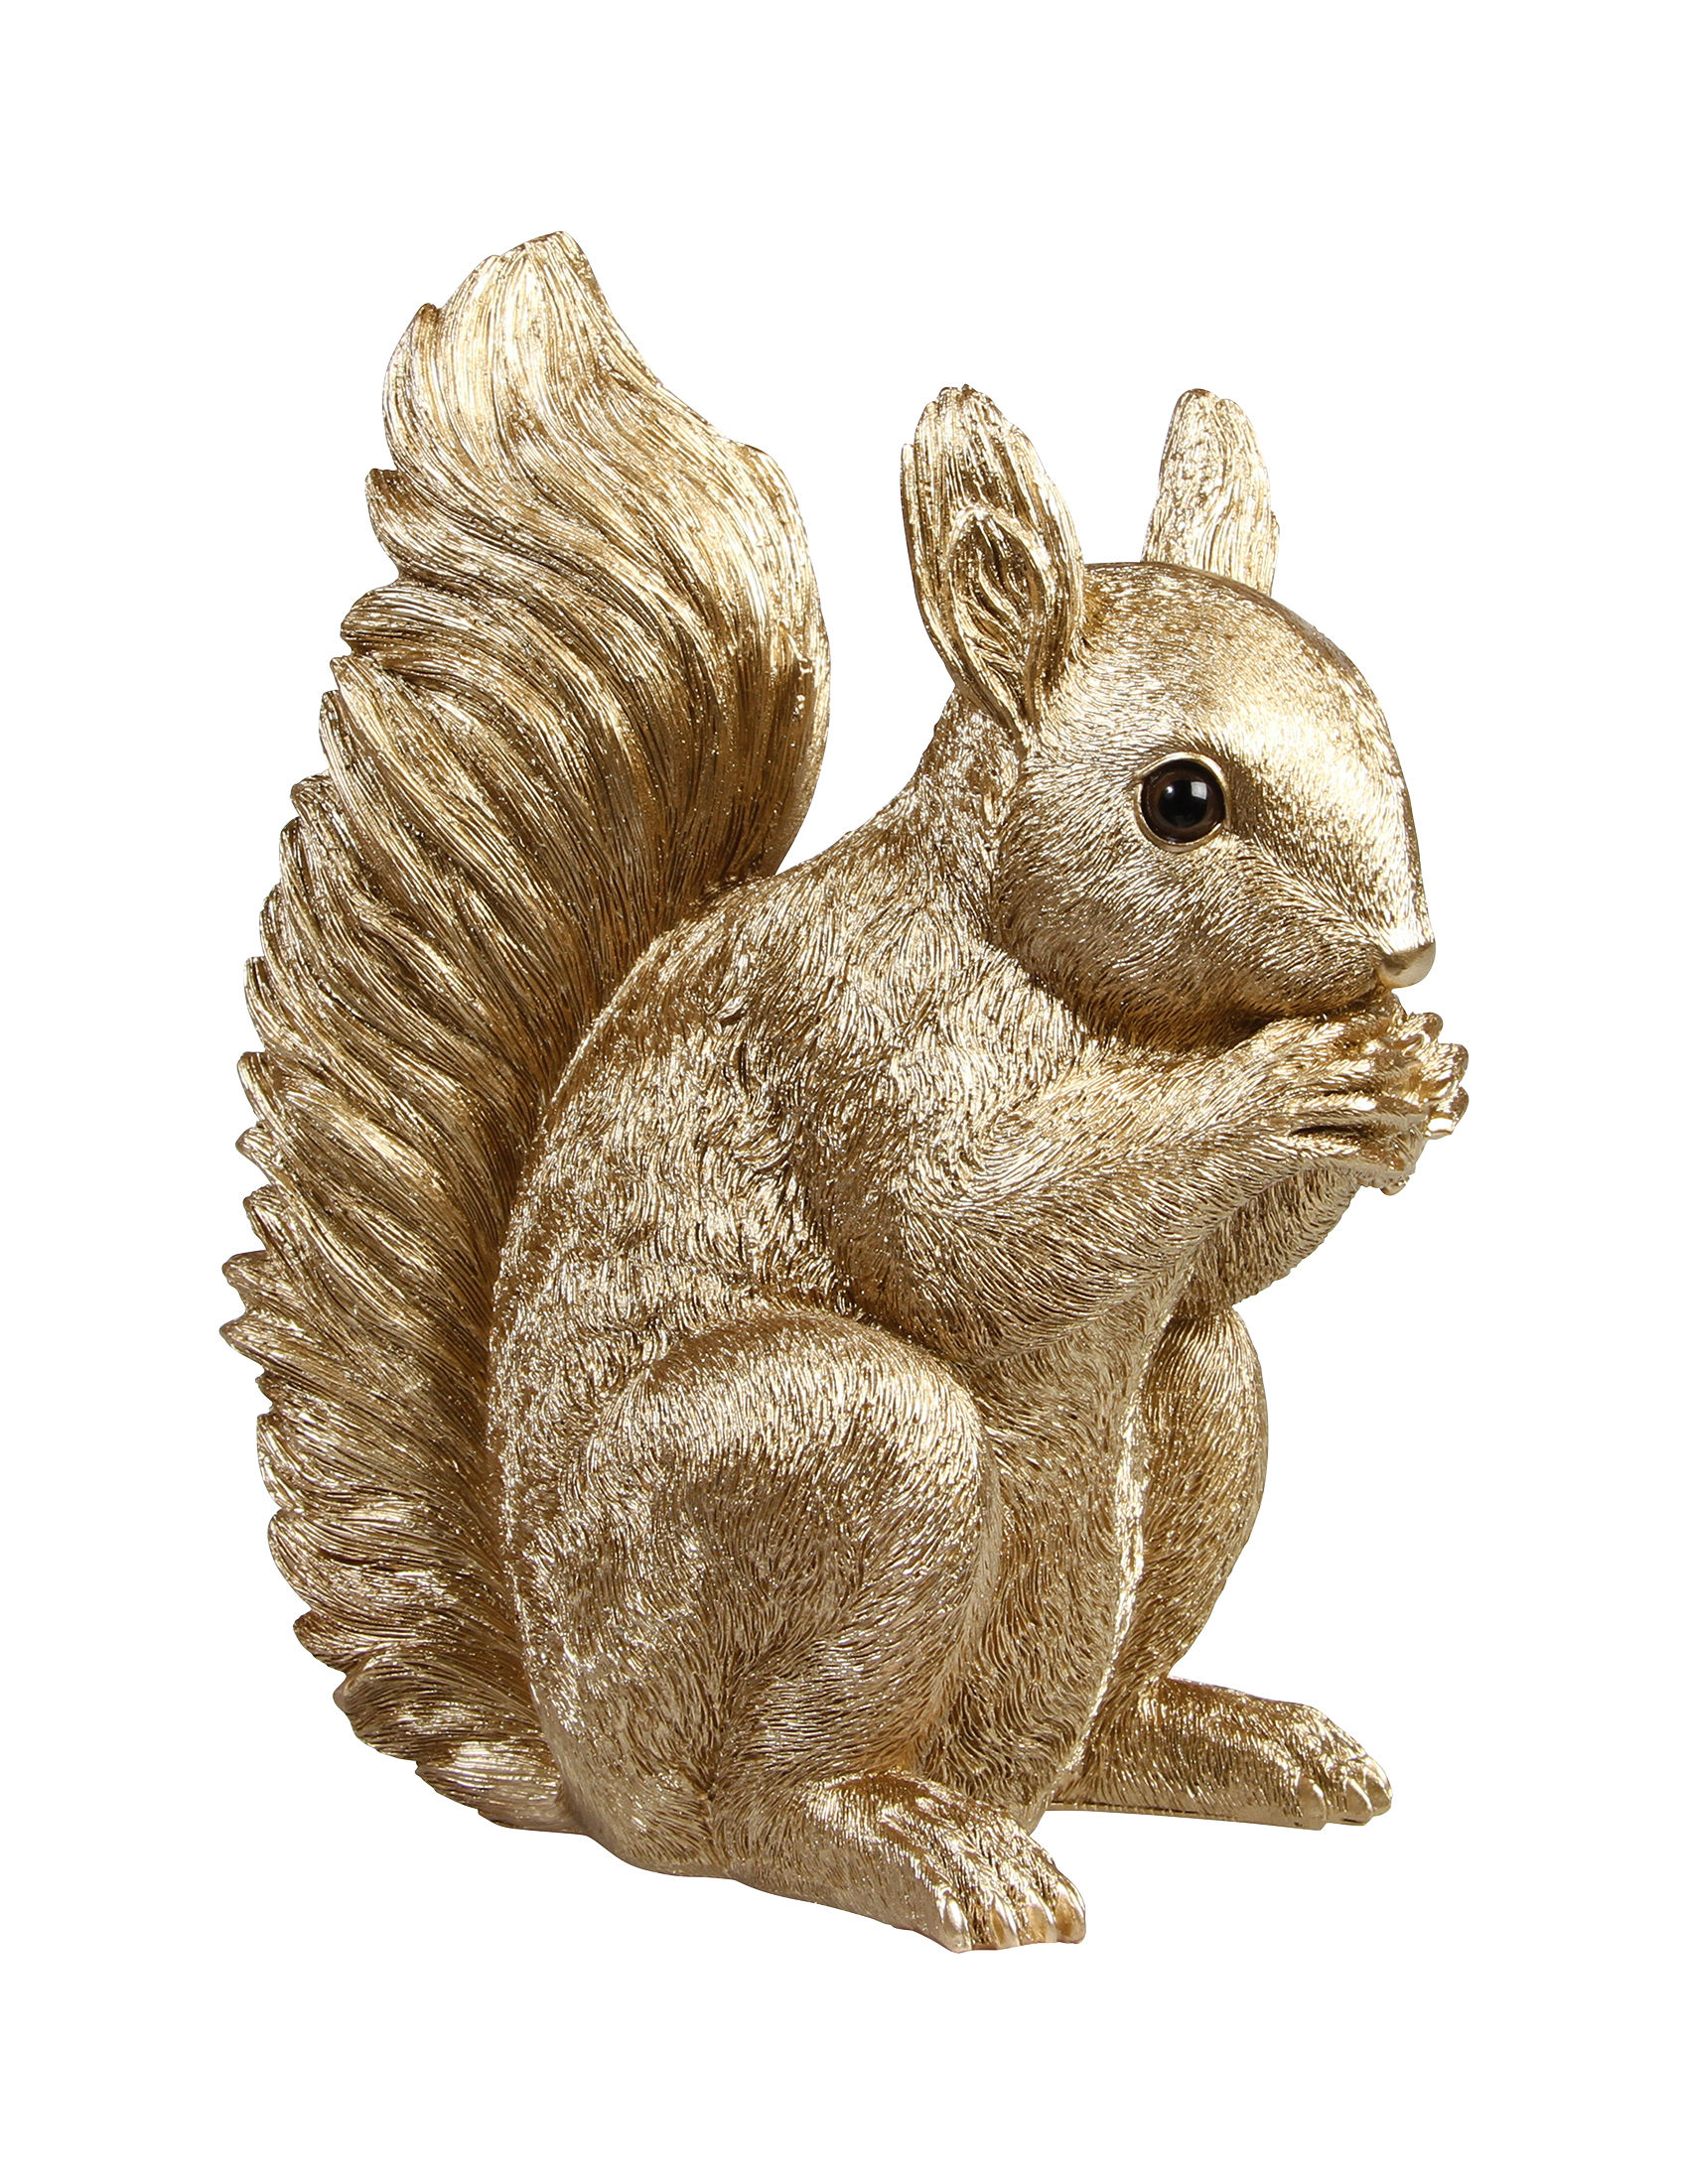 Decoration - Children's Home Accessories - Piggy bank - Squirrel / H 16 cm by & klevering - Gold - Polyresin